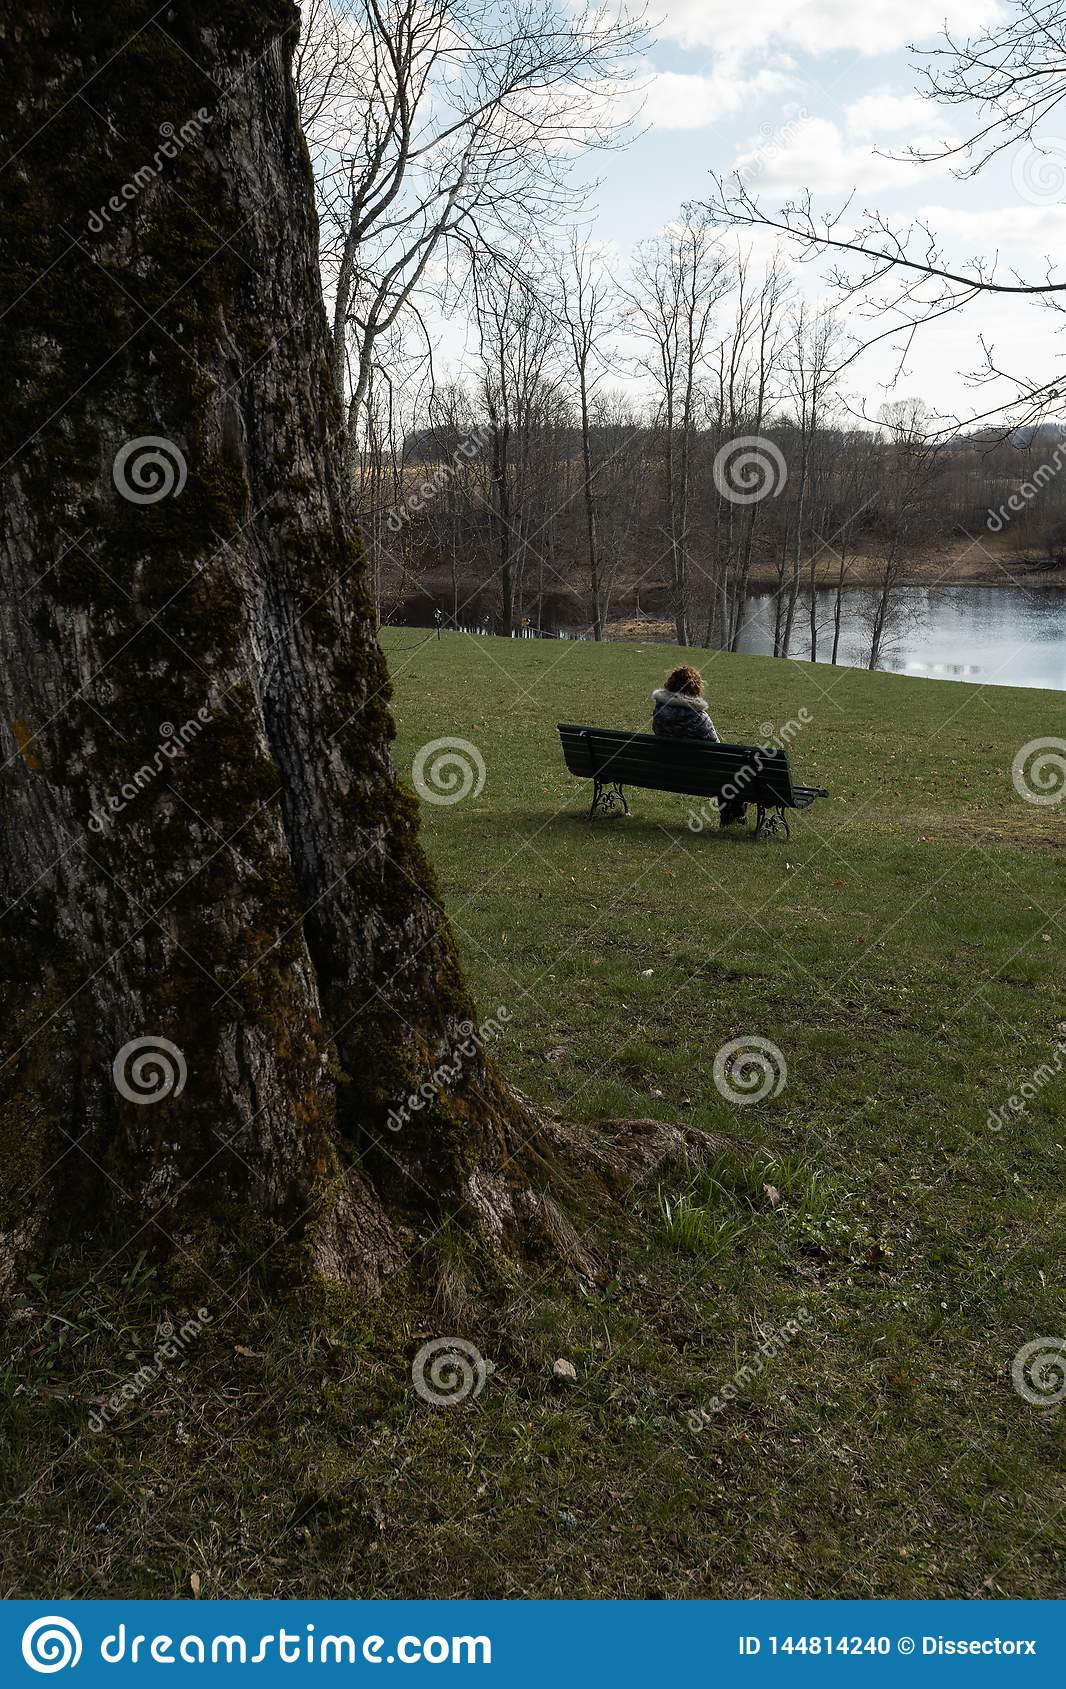 Lonely woman sitting on a bench in a park thinking about life looking at the horizon -Liepupes Muiza manor in beautiful